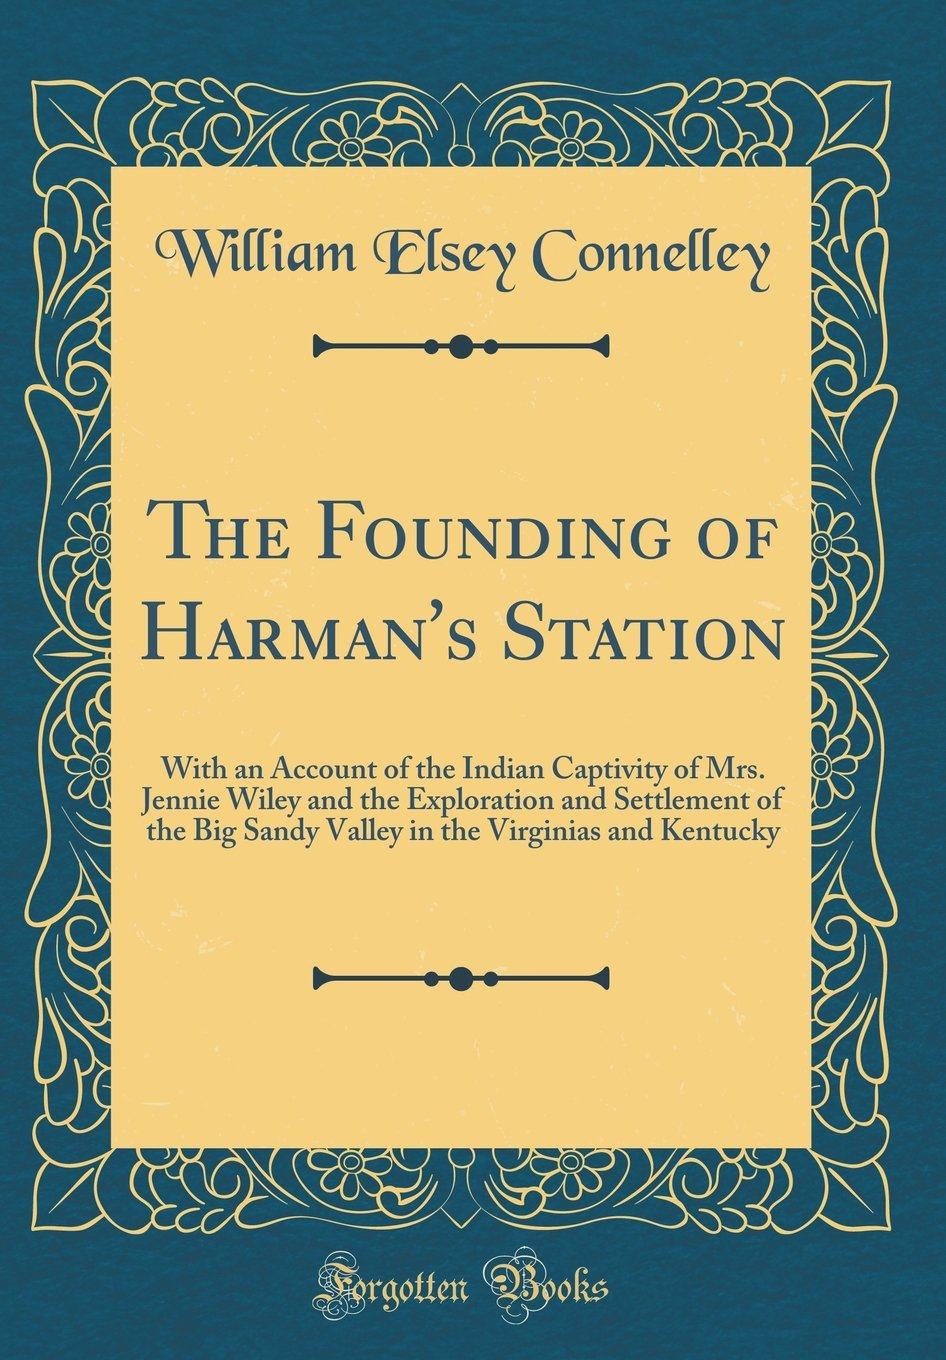 The Founding of Harman's Station: With an Account of the Indian Captivity of Mrs. Jennie Wiley and the Exploration and Settlement of the Big Sandy ... the Virginias and Kentucky (Classic Reprint) PDF